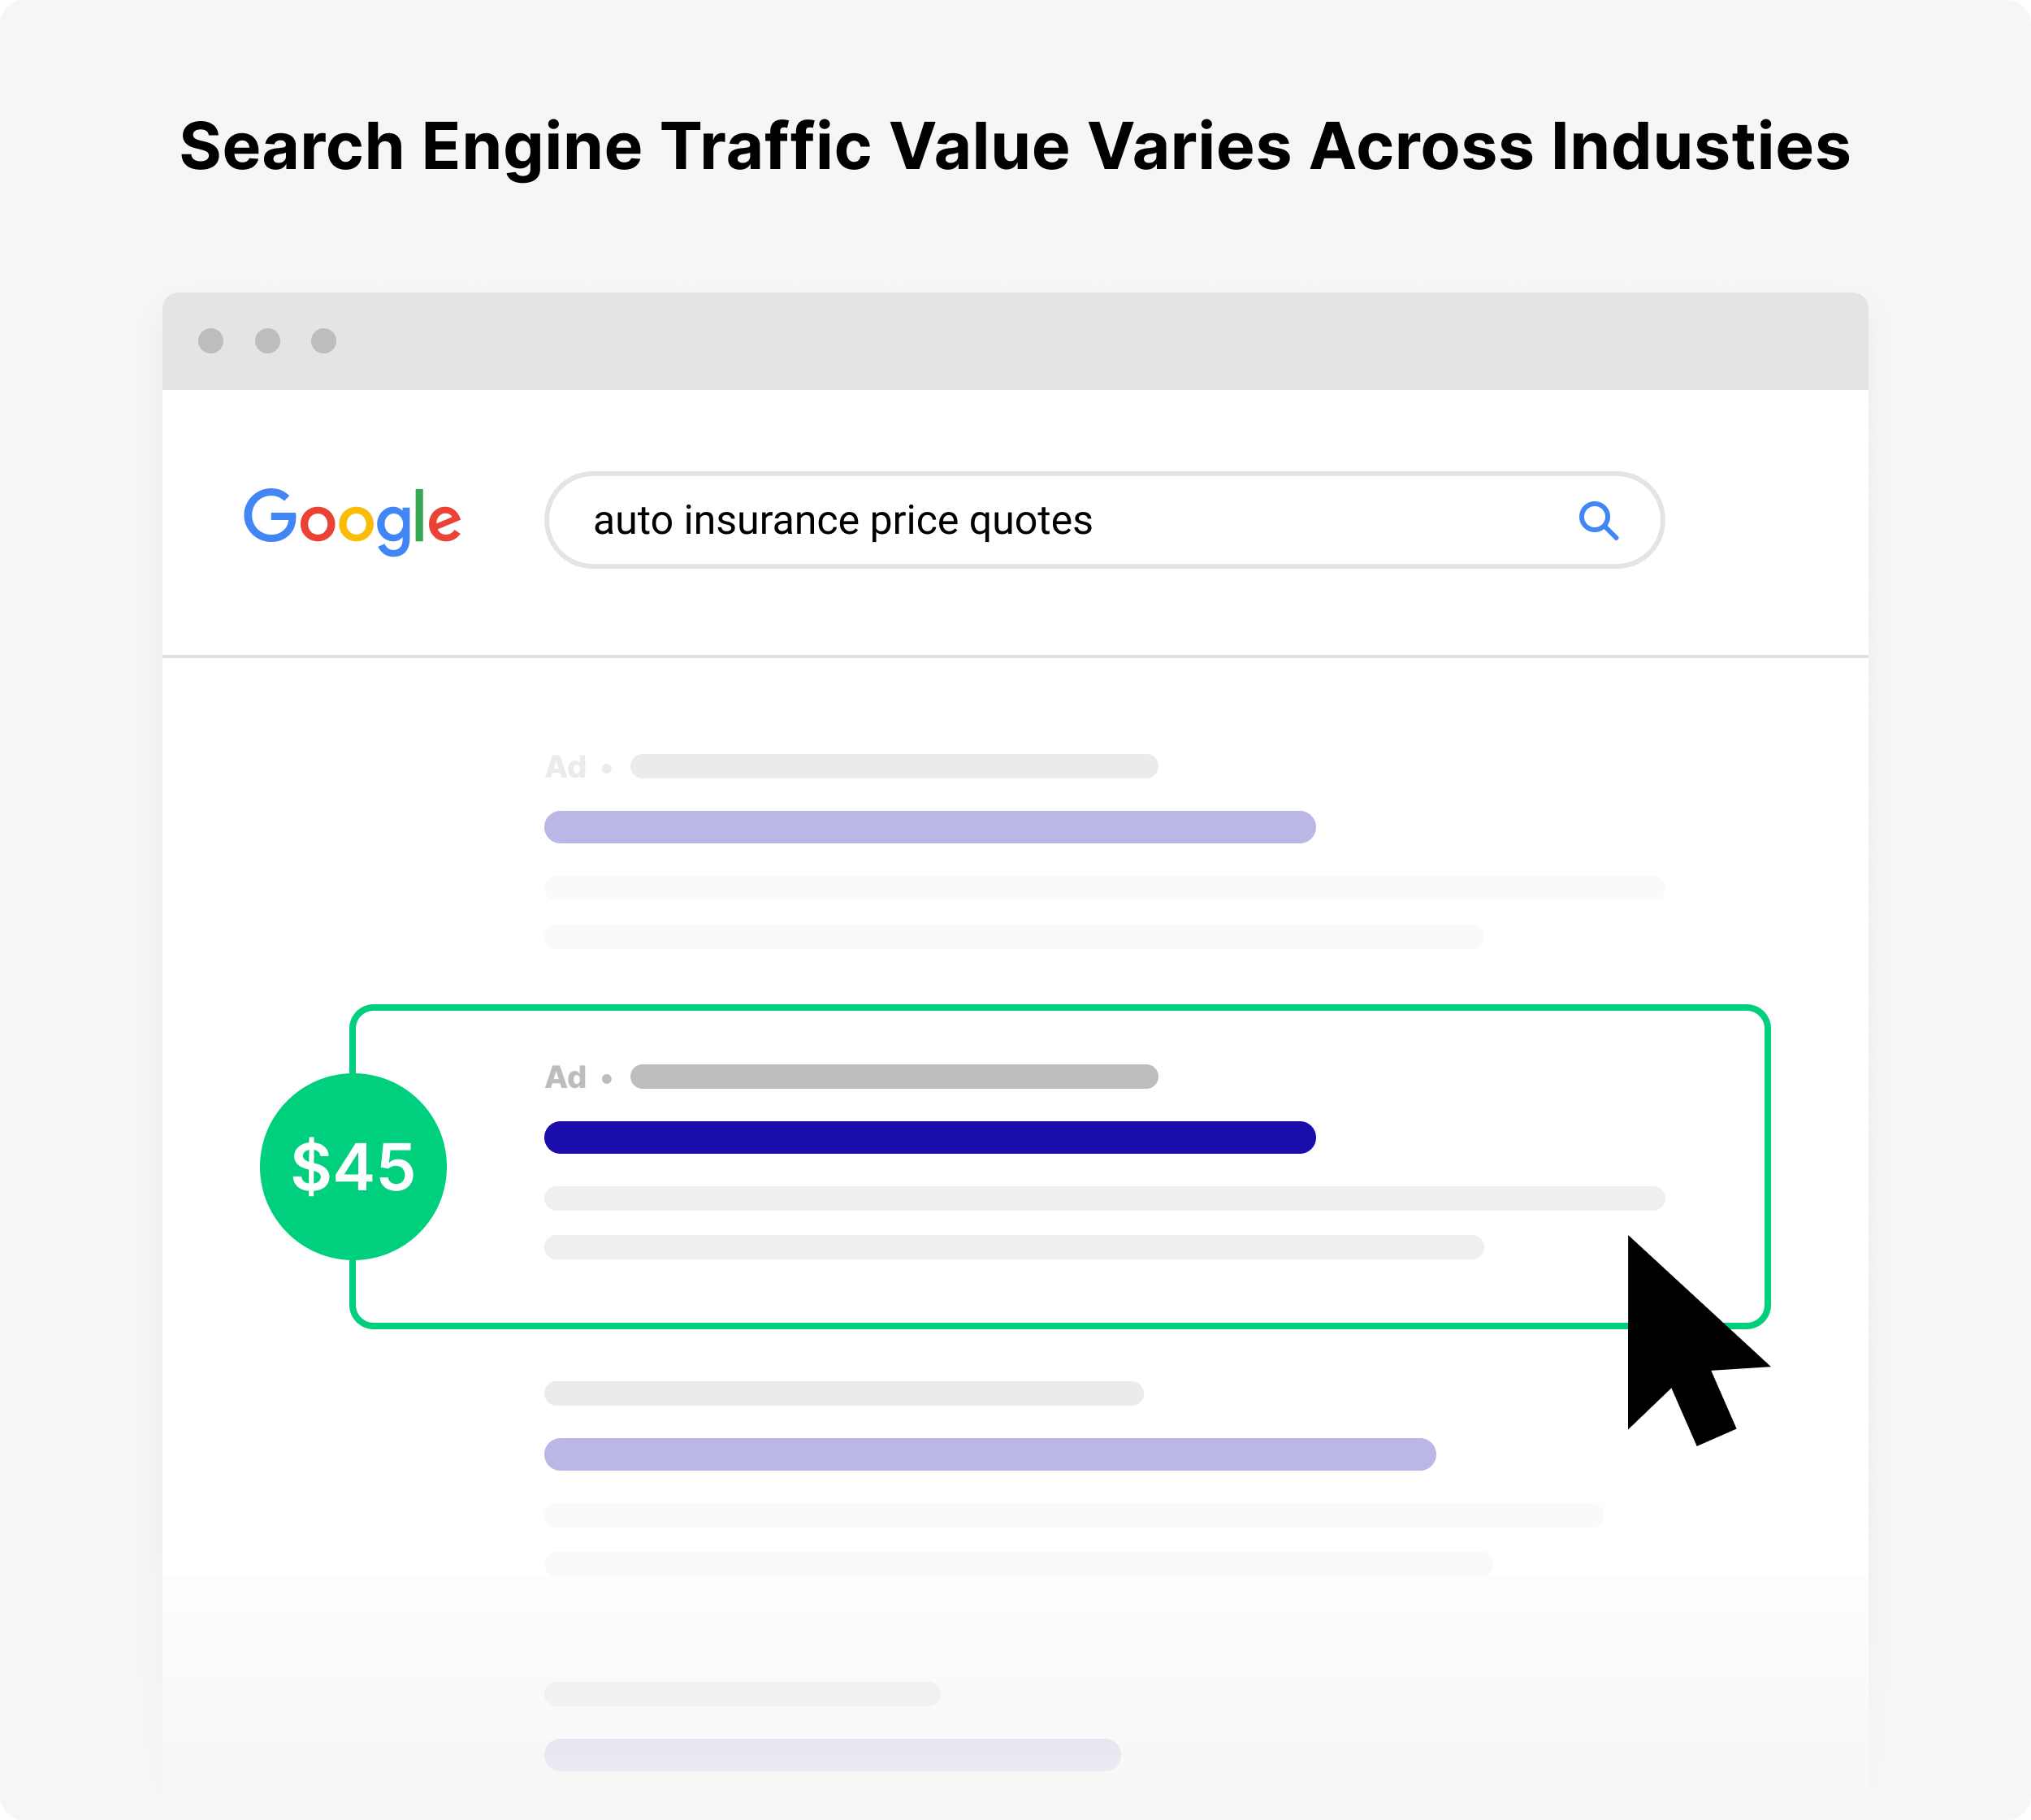 Search engine traffic value across industries